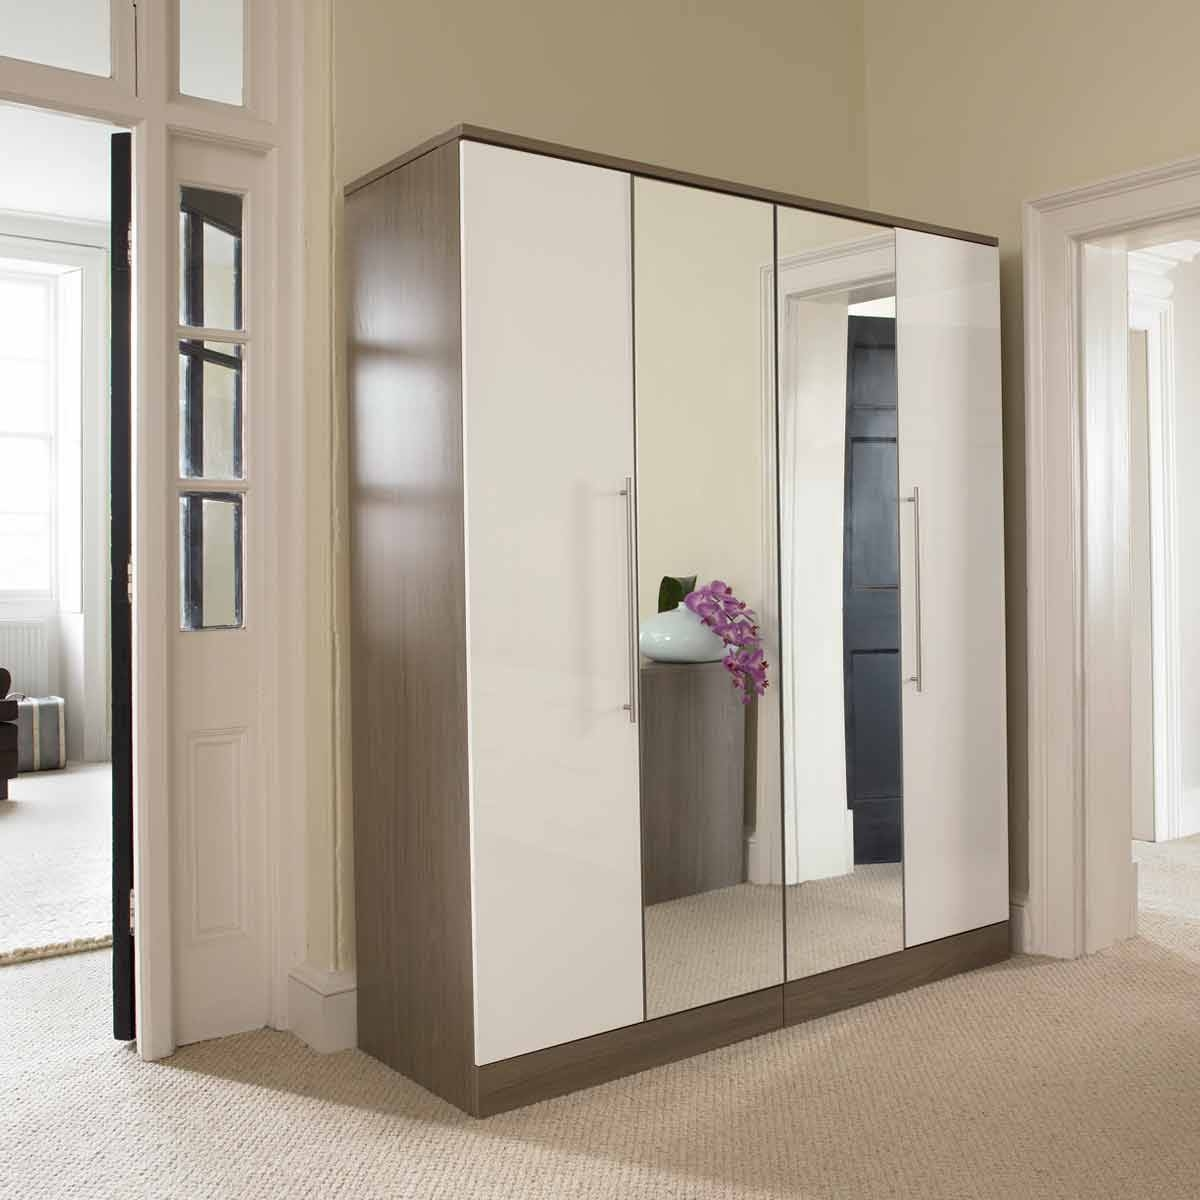 Sofa Wardrobe Closet With Mirror Doors Mirrored | Winafrica For Wardrobes With Mirror (View 12 of 15)